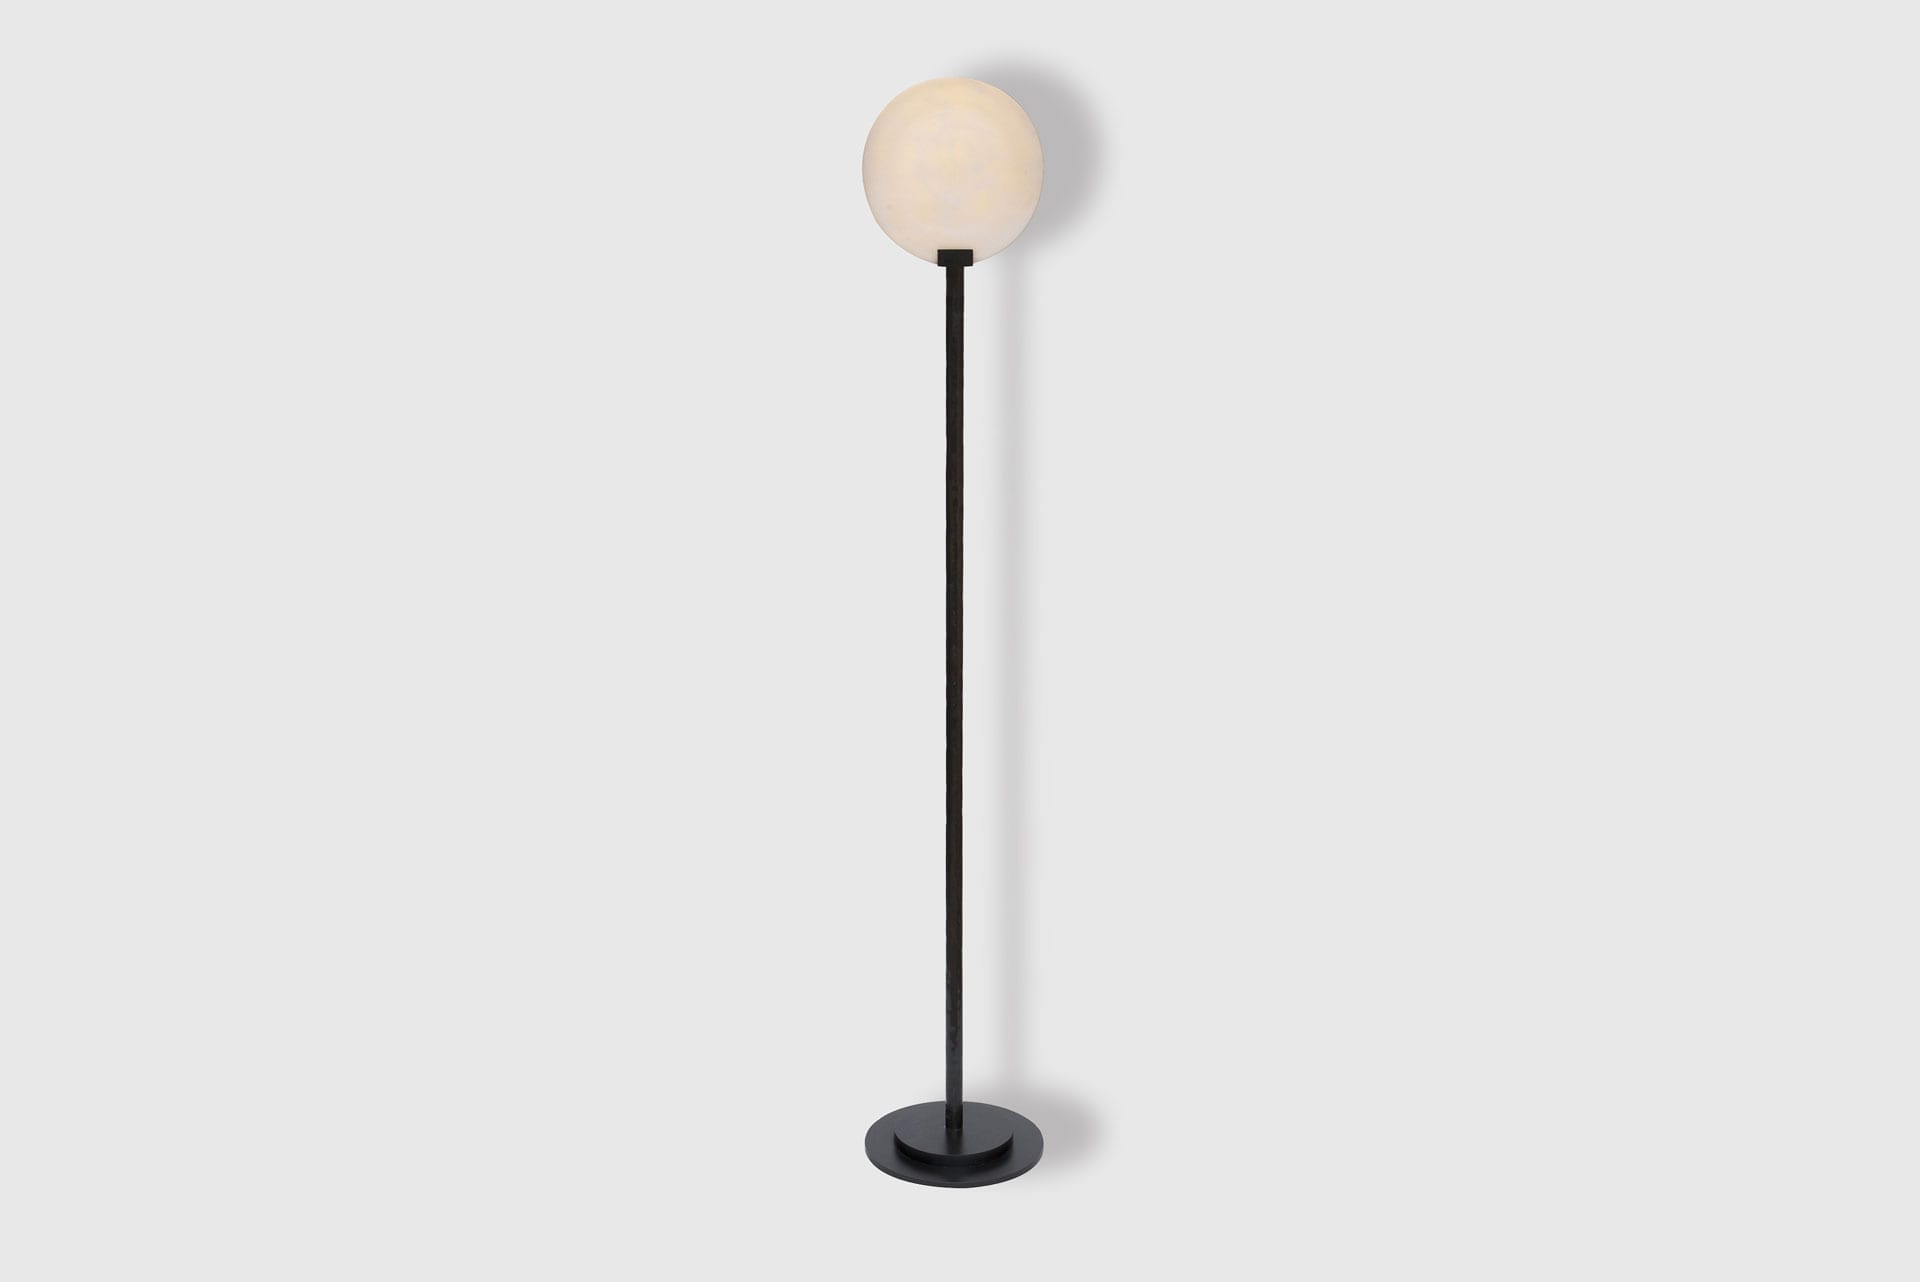 Lampe Pavillon par cslb studio, caroline sarkozy - the invisible collection